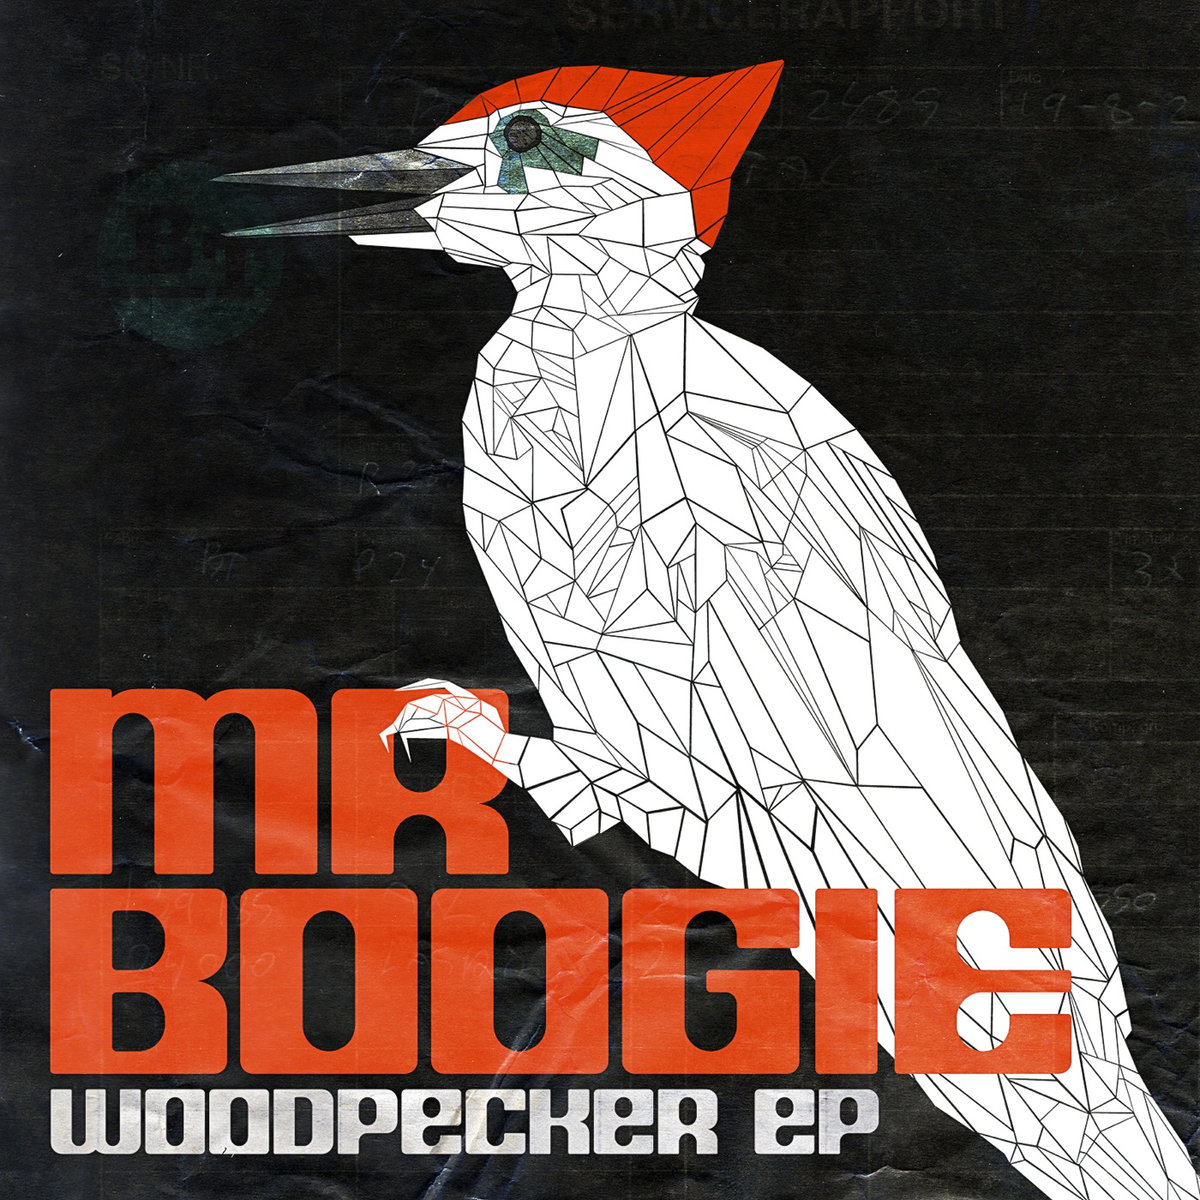 Mr. Boogie - Woodpecker @ 'Woodpecker' album (electronic, dubstep)